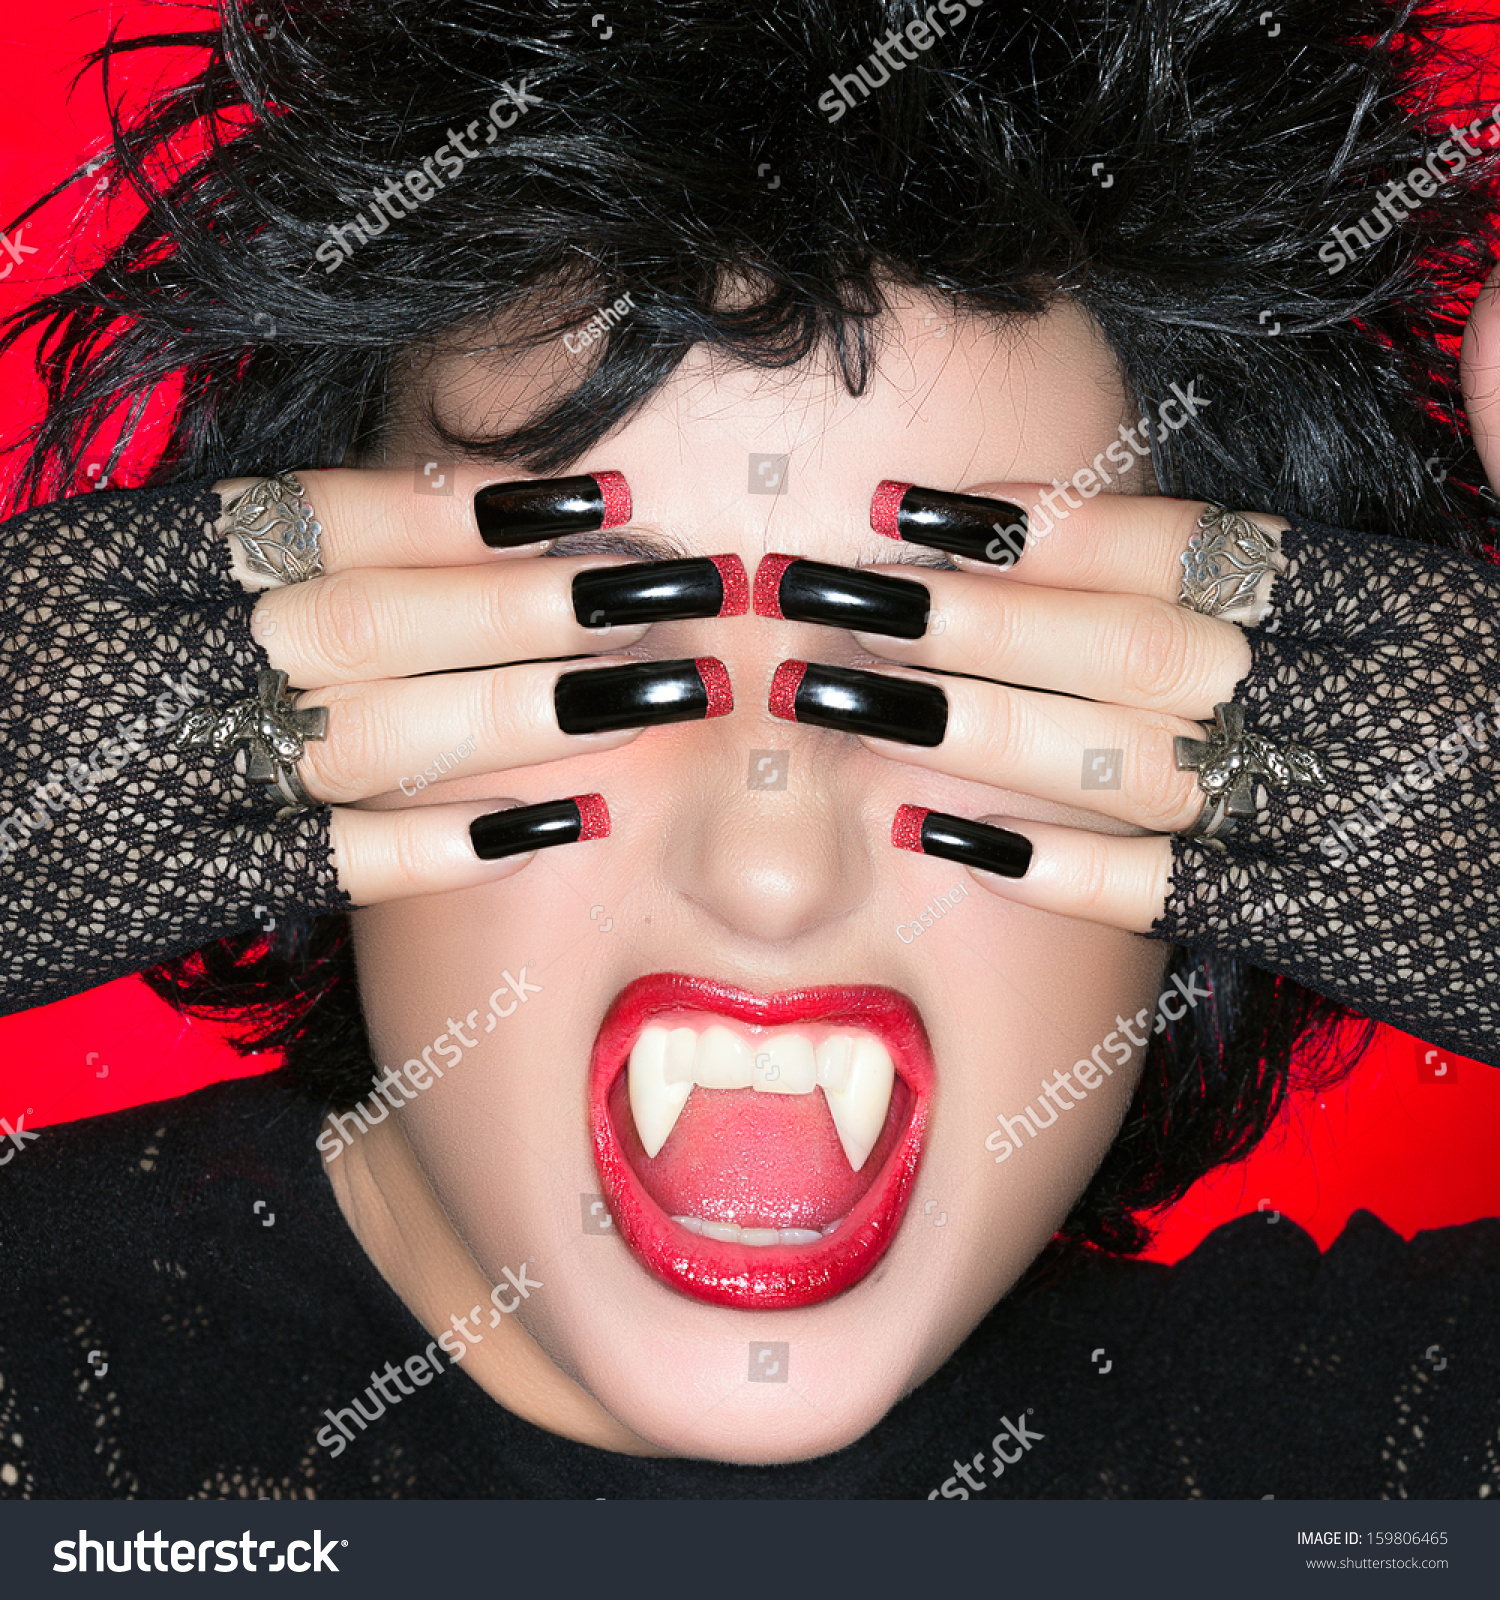 Vampire Teeth Nails Stock Photo Halloween Vampire Beautiful Young Woman Screaming